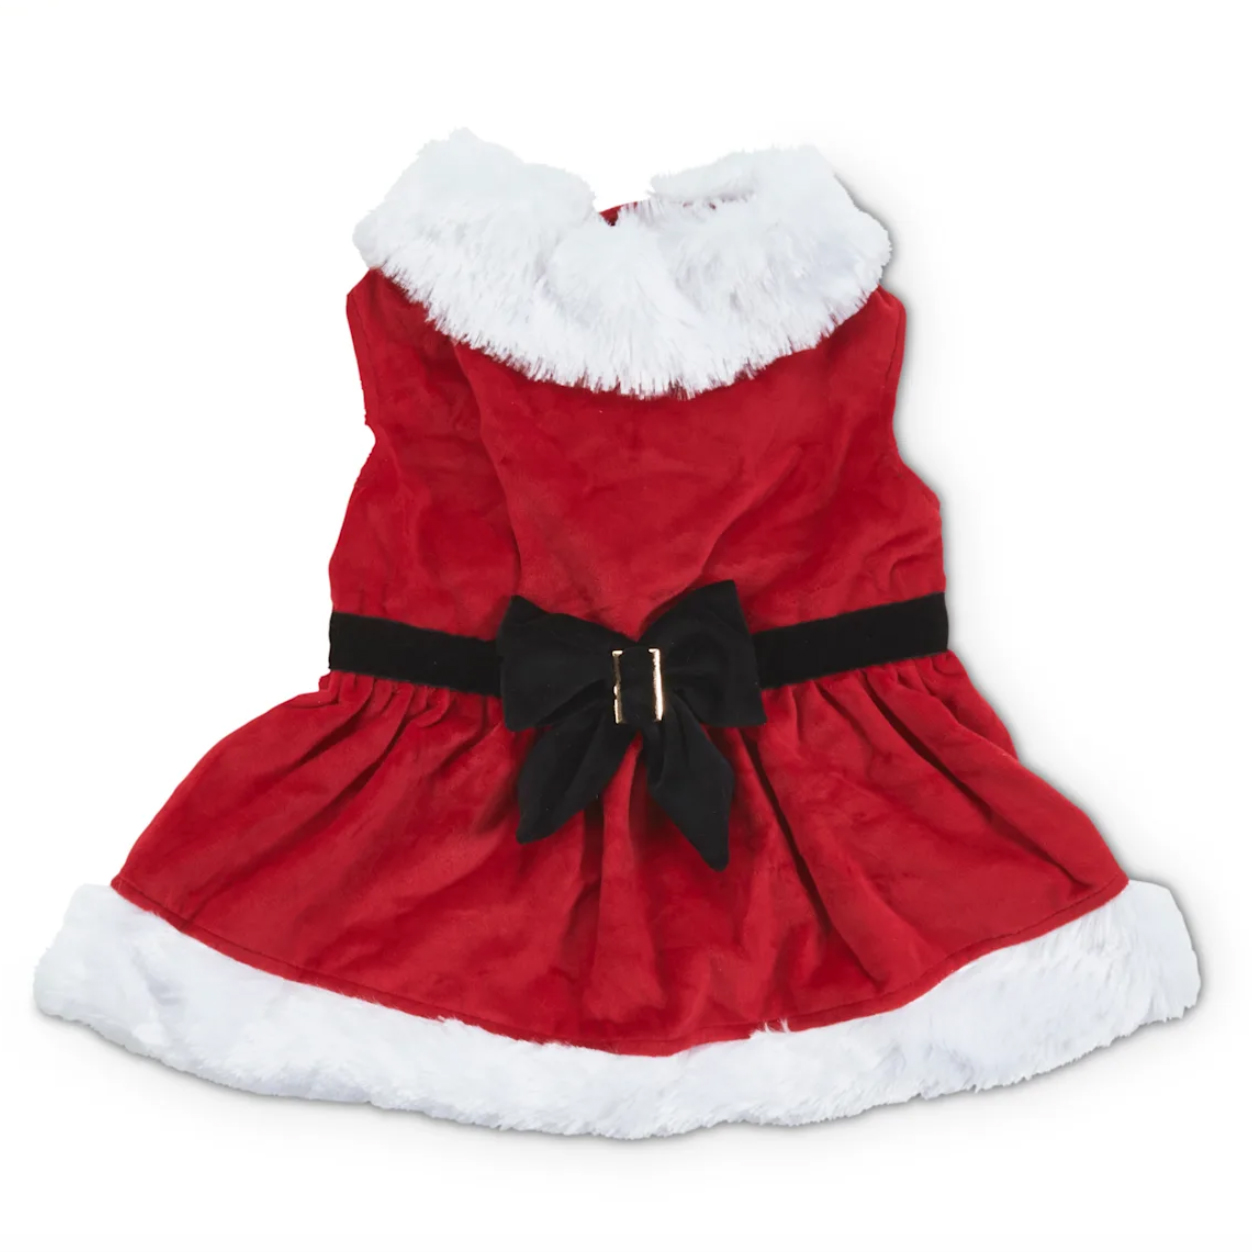 mrs-claus-is-coming-red-dog-costume